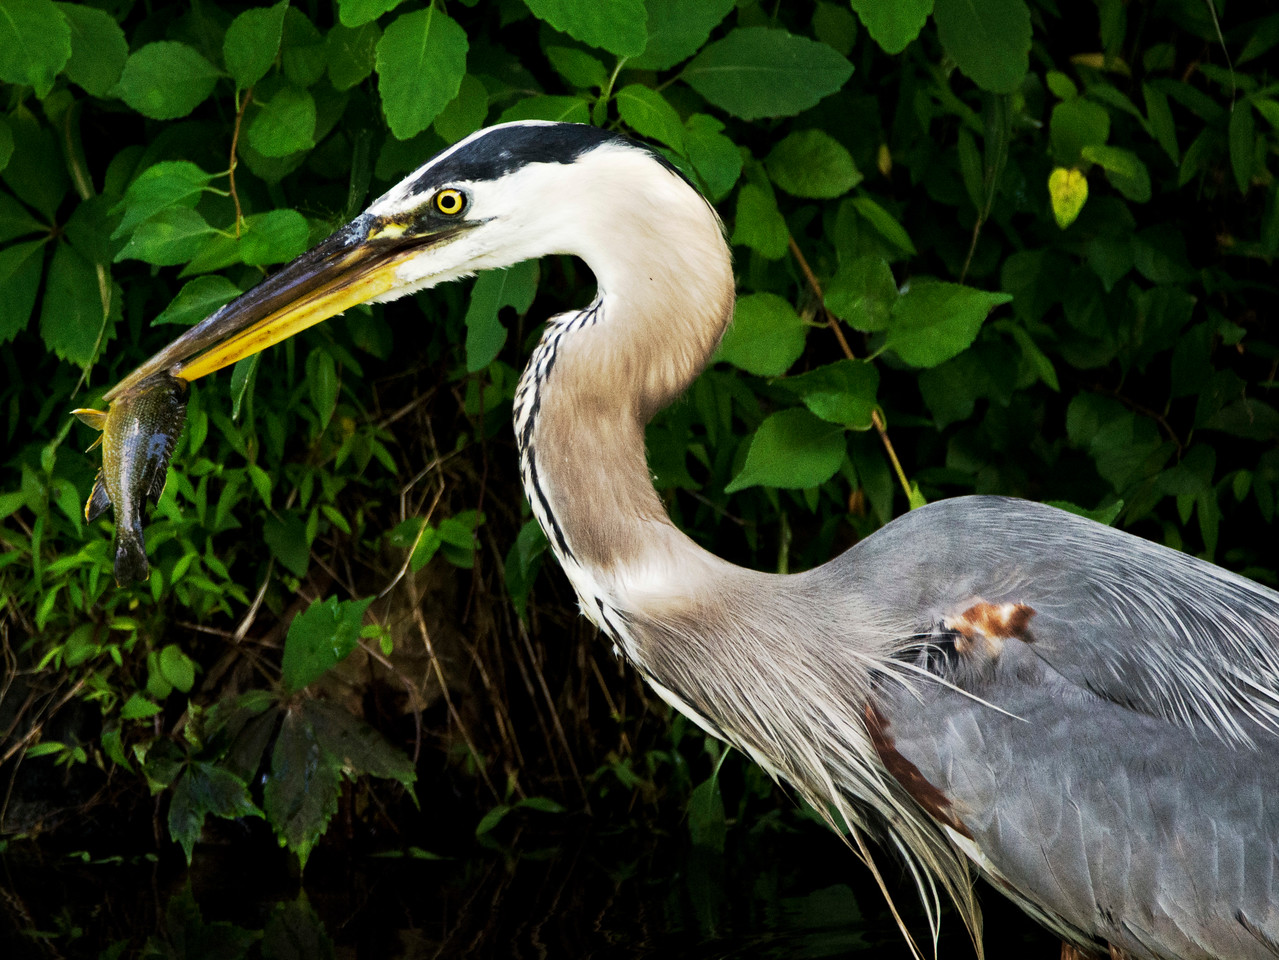 Dinner for the Great Blue Heron